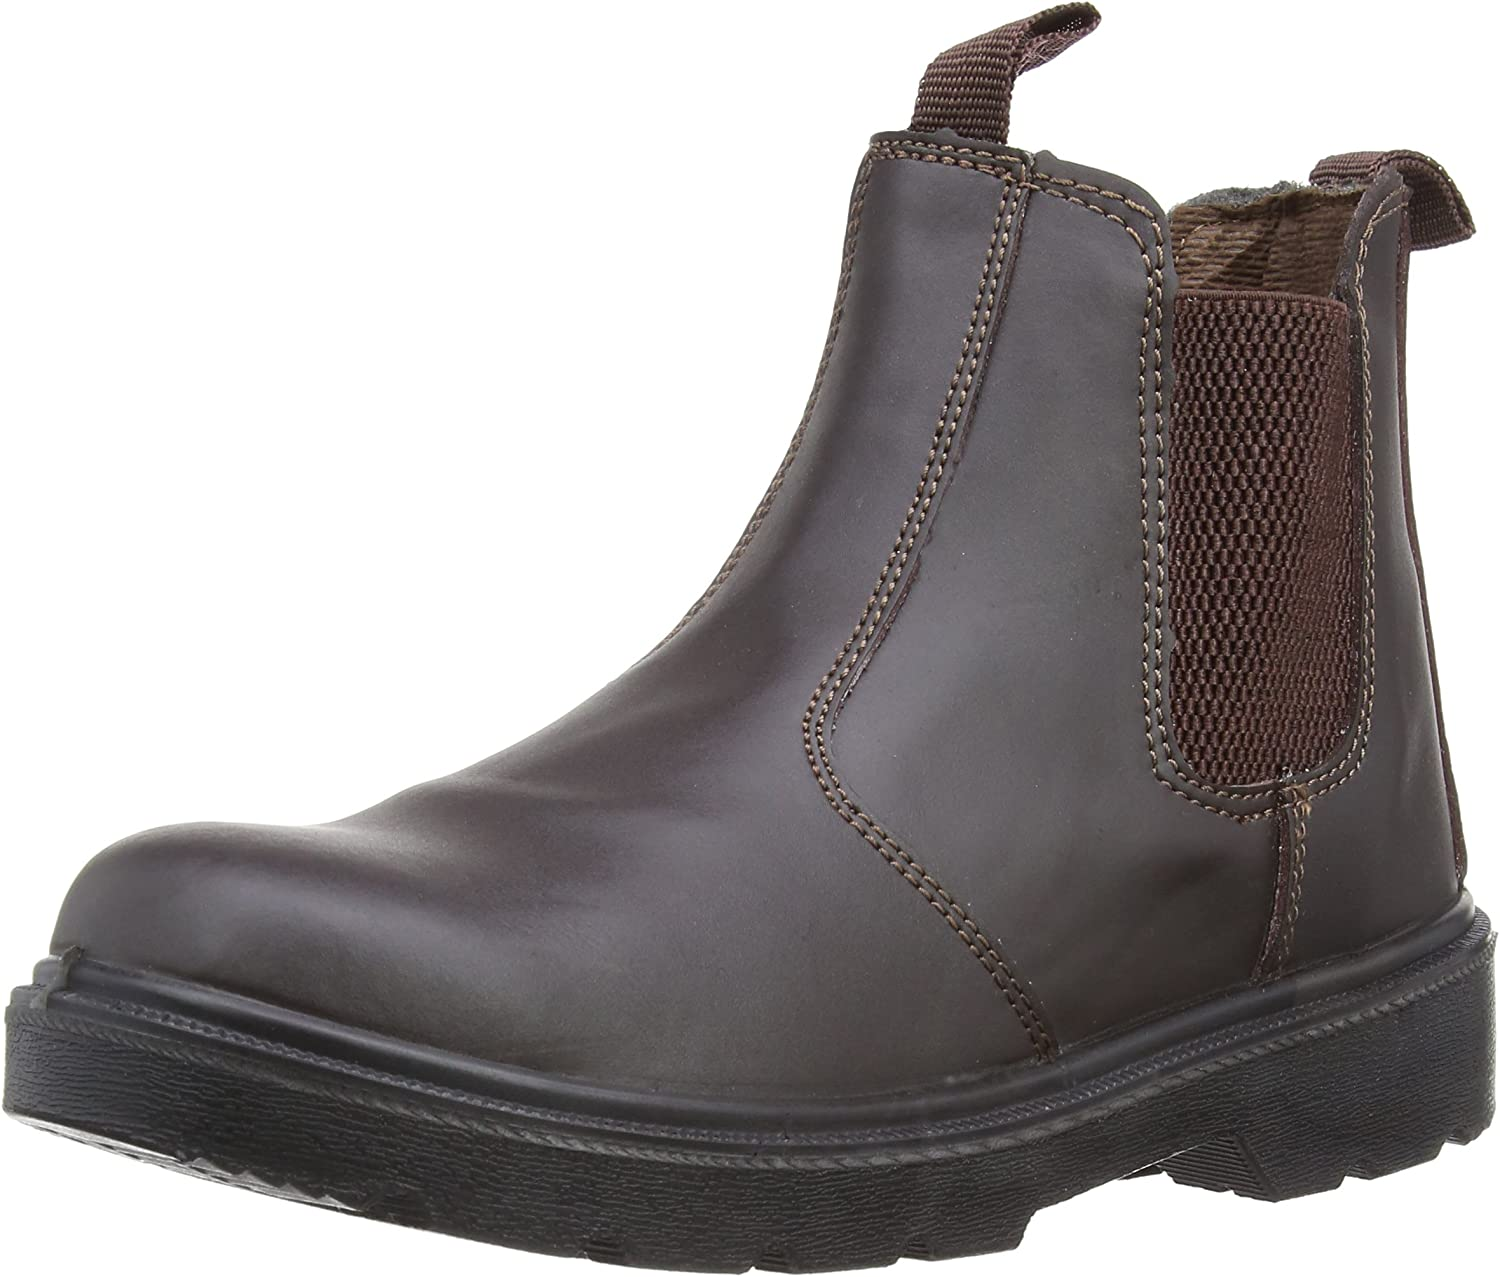 Work Steel Toe Boots Shoes Black